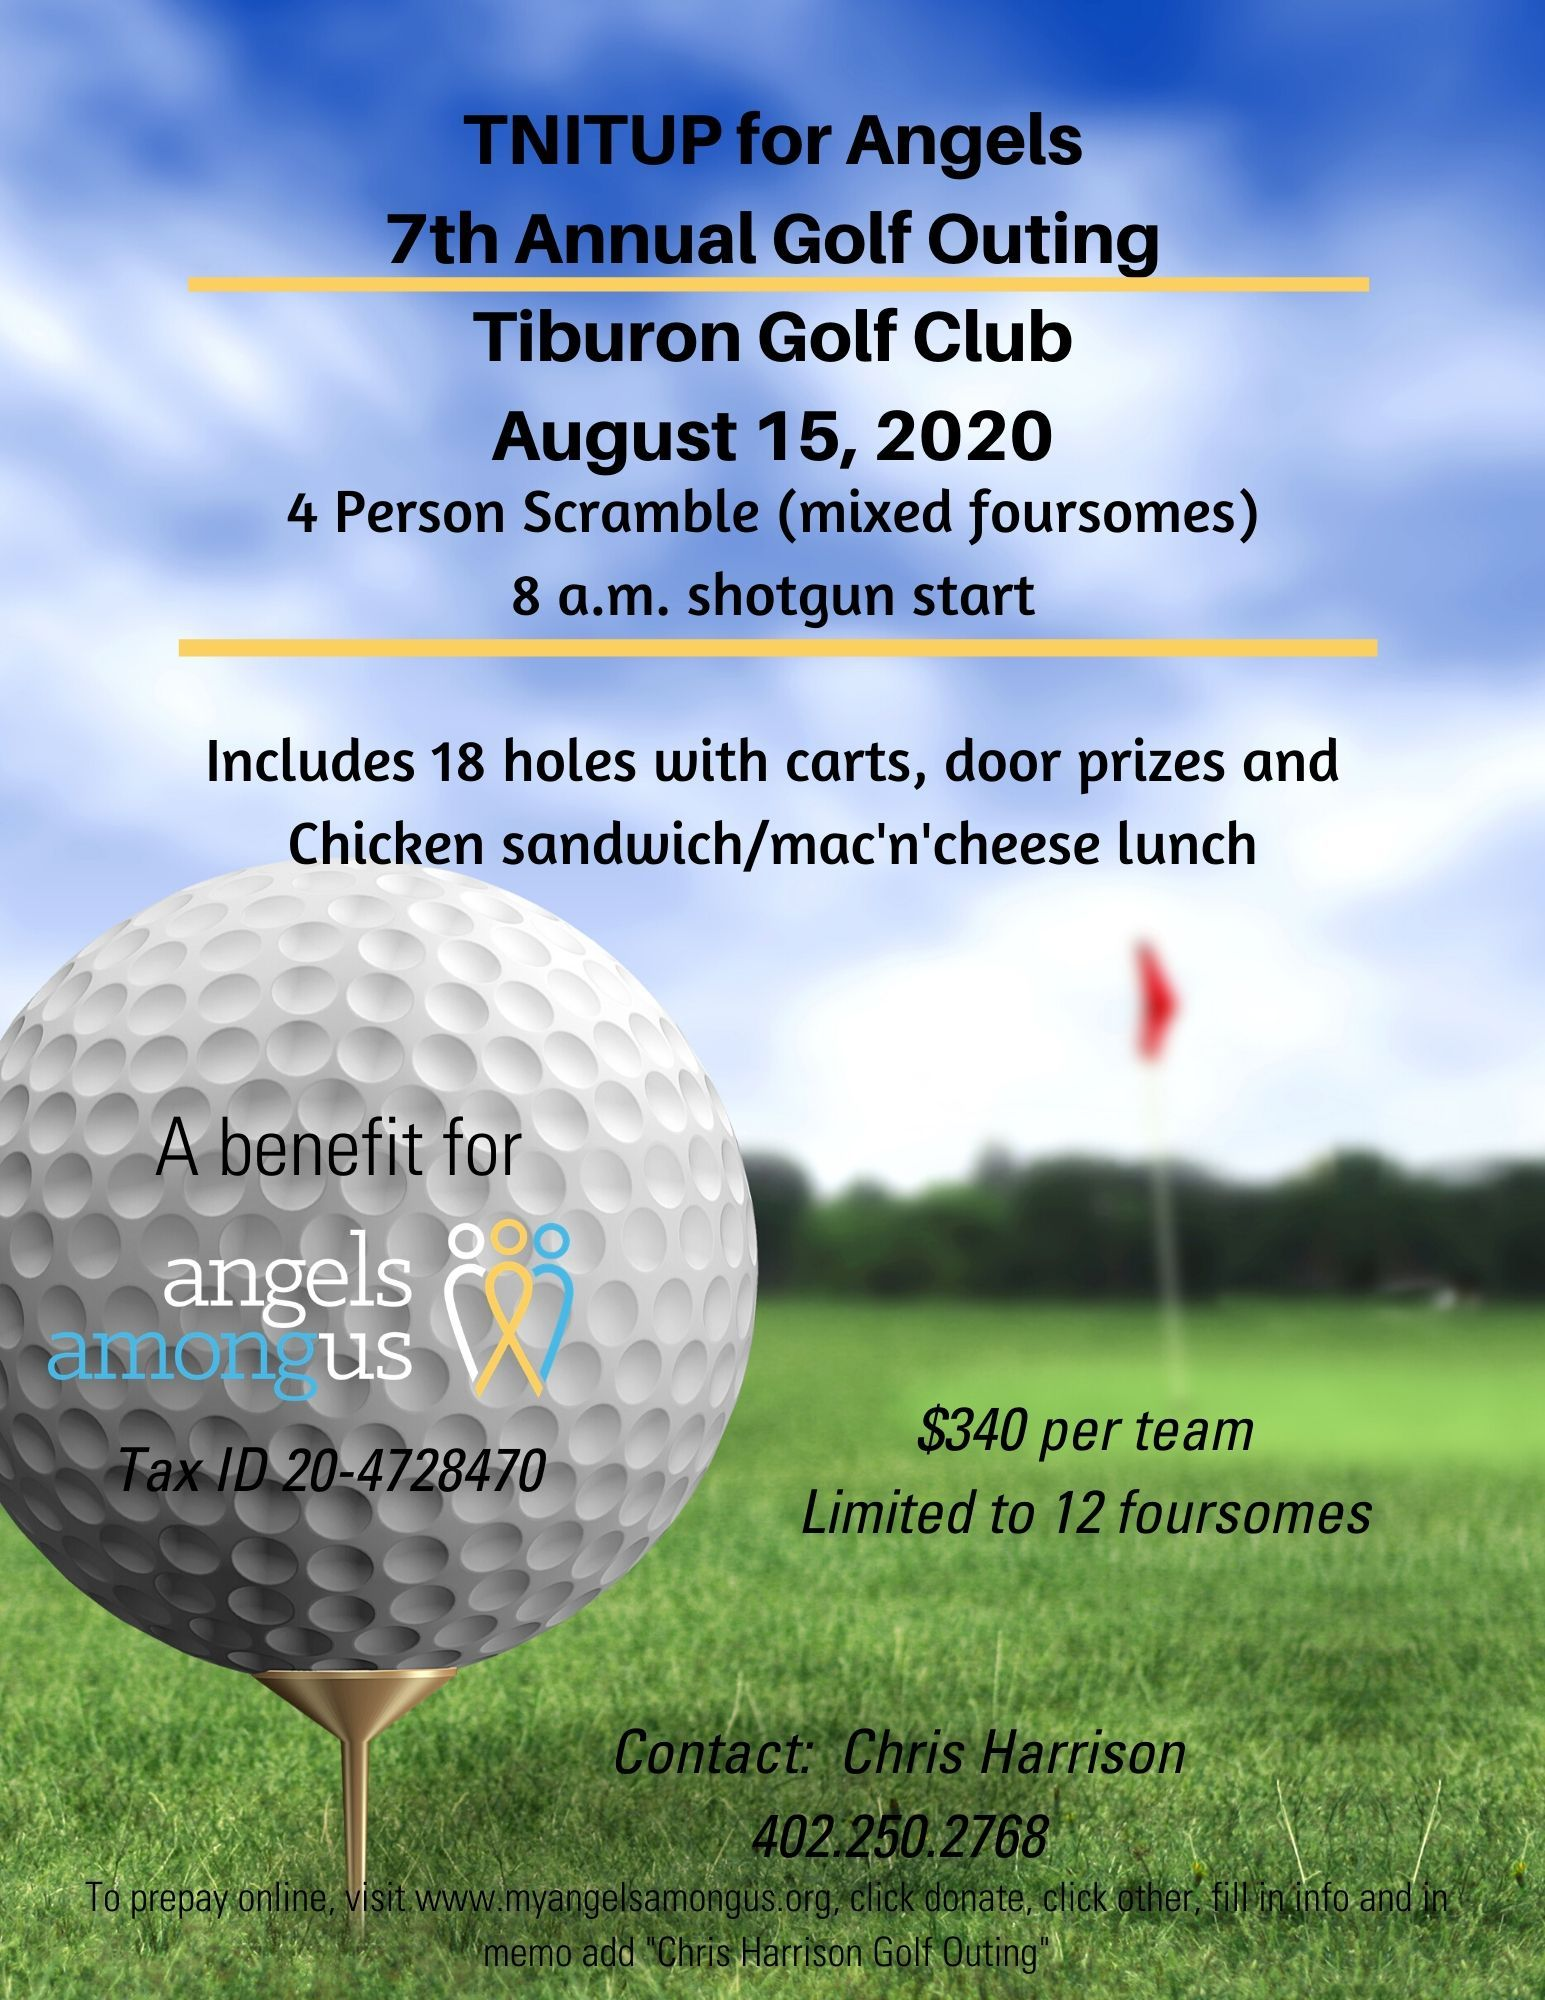 Chris Harrison's 7th Annual Golf Outing